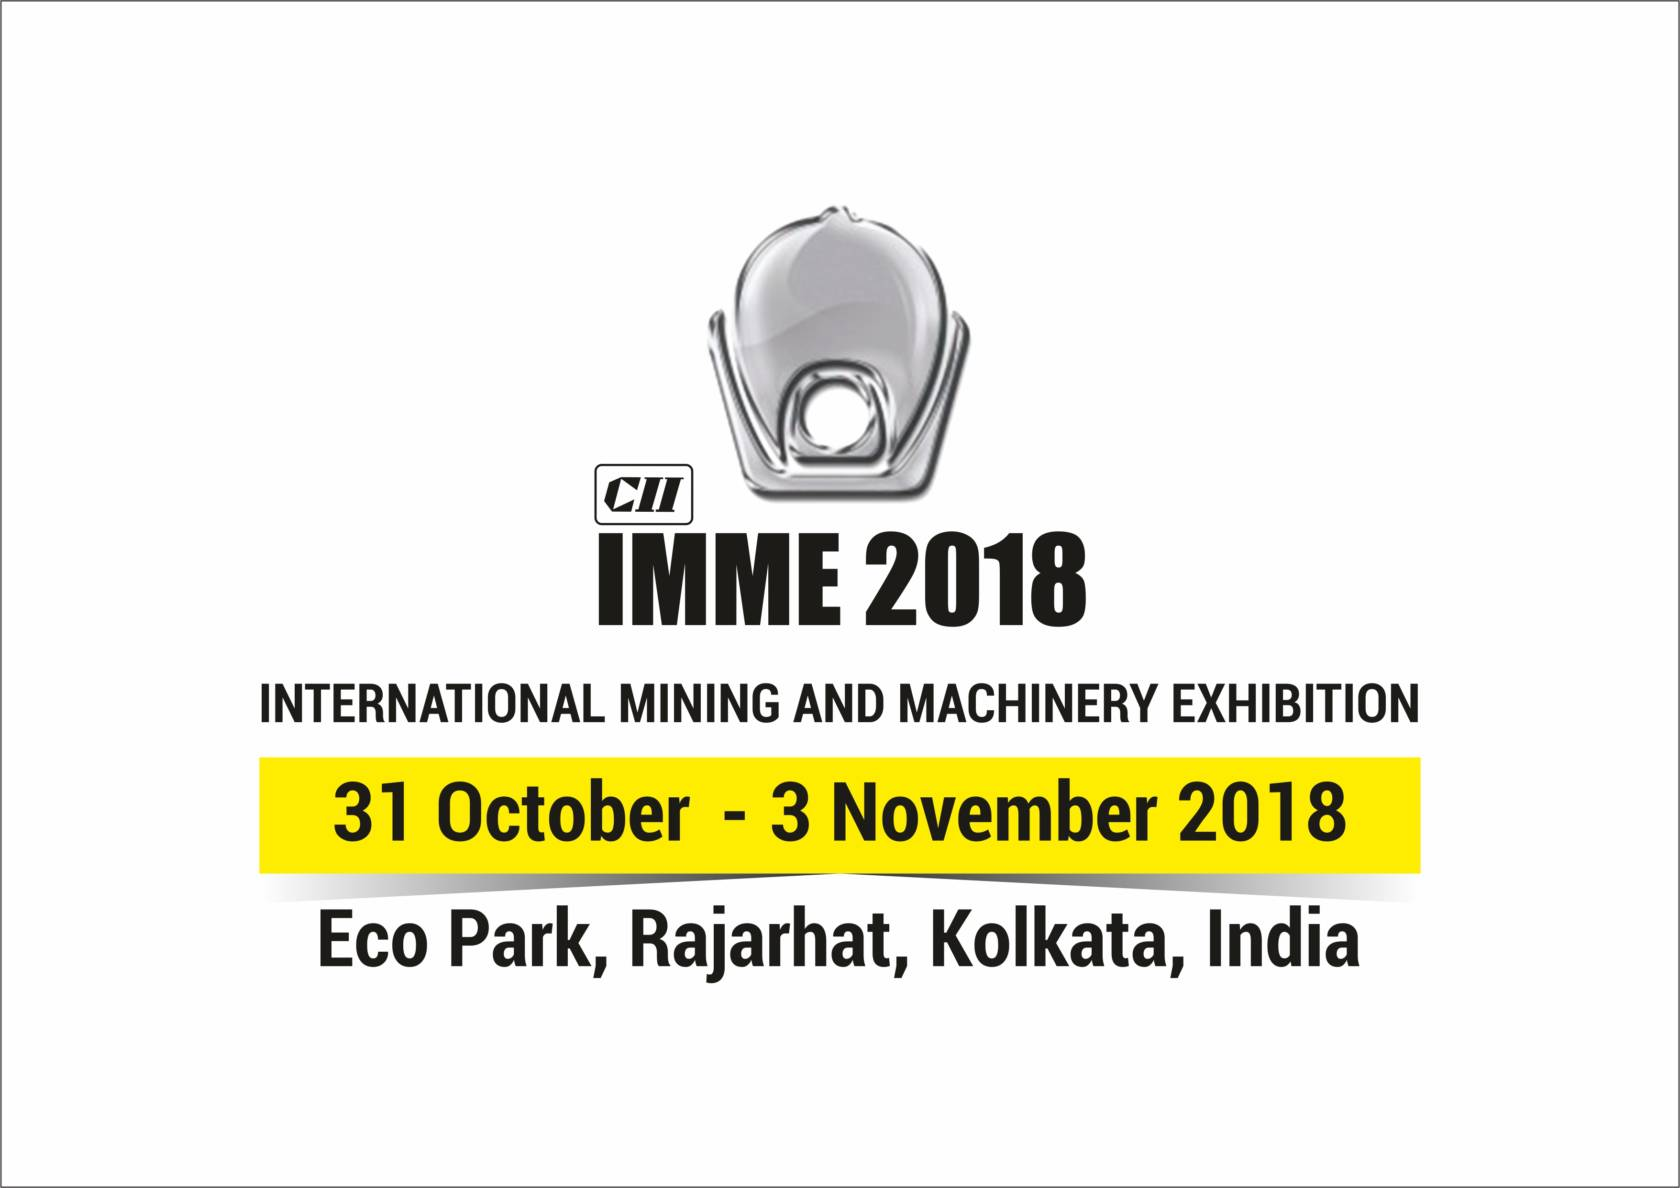 IMME 2018